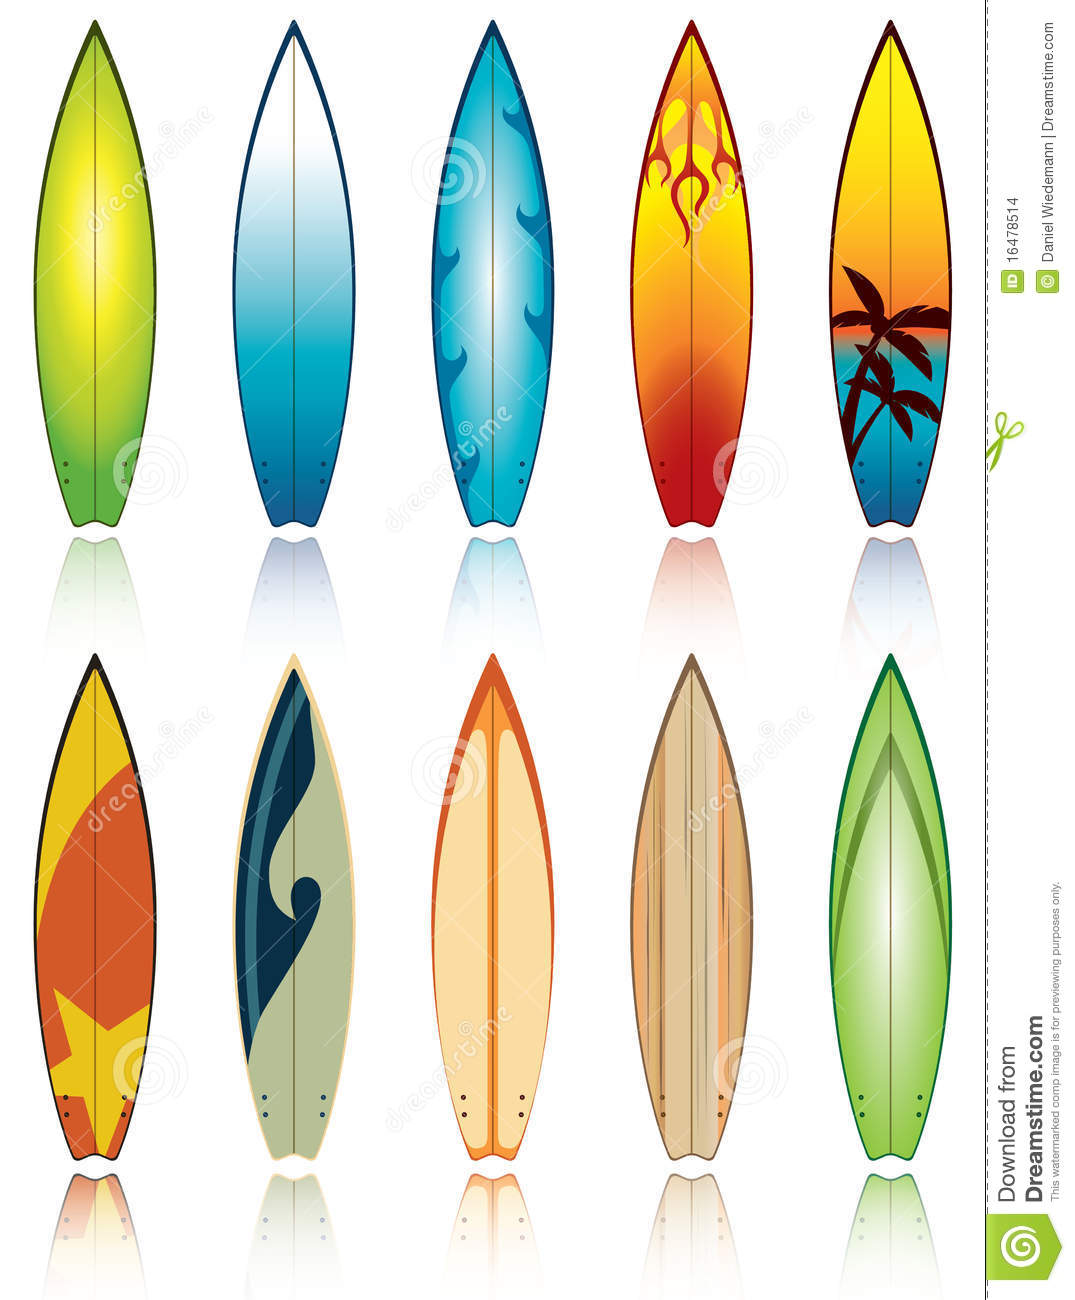 Raw Surfboards